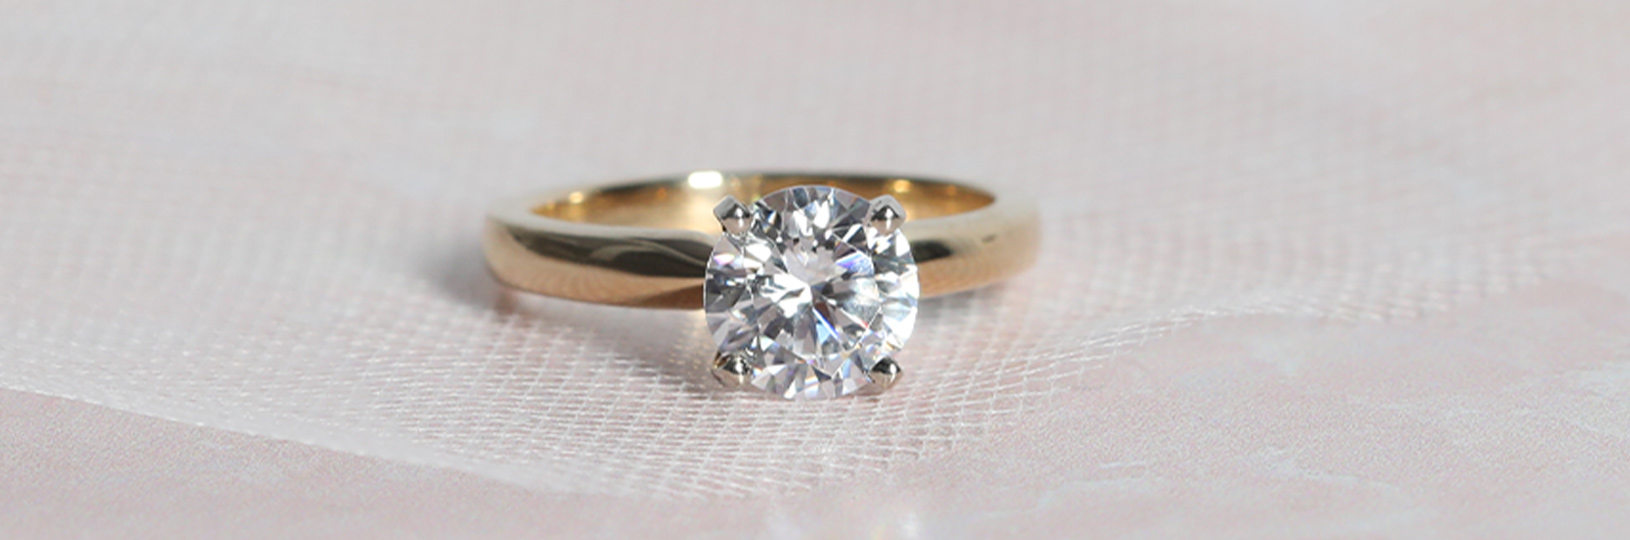 A round cut solitaire engagement ring featuring a lab grown diamond